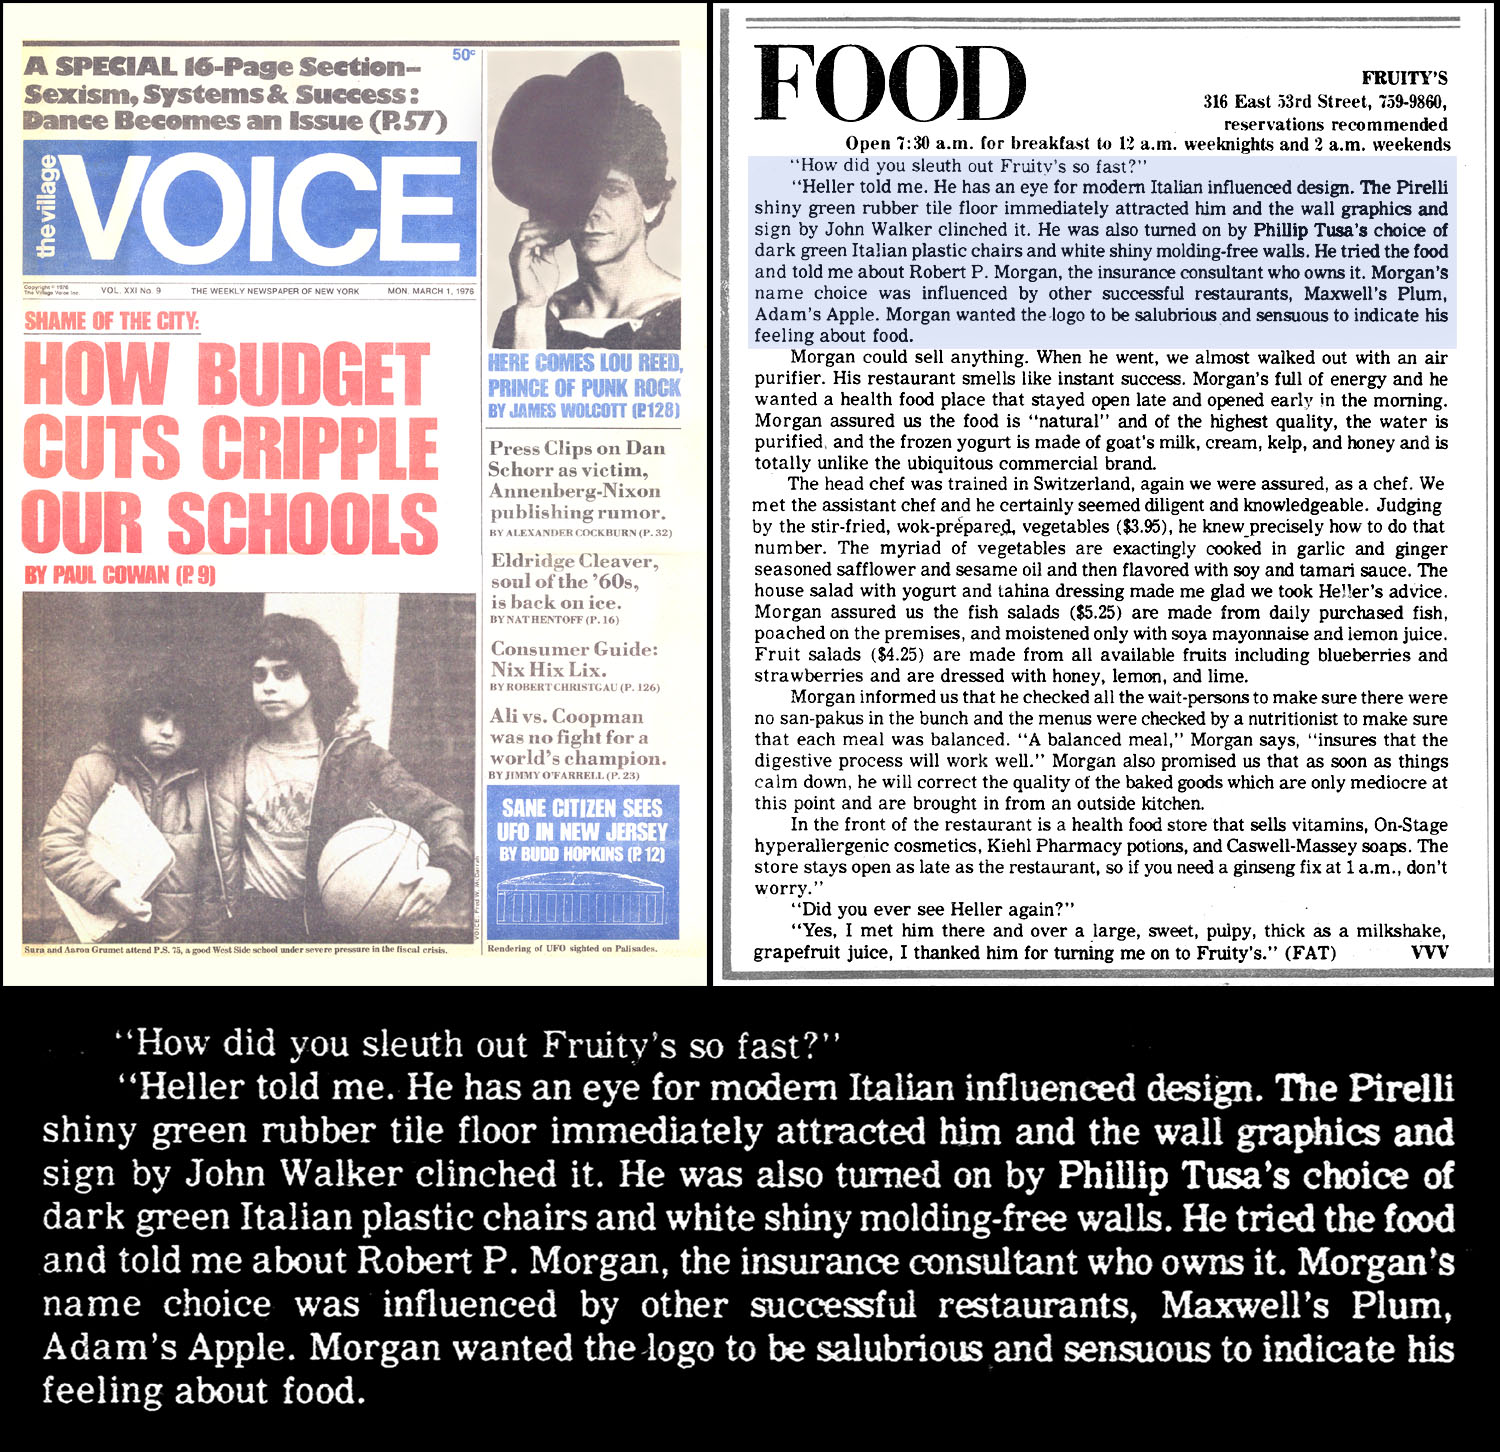 Village Voice Review (3/1/76) centerfold; Fruity's Restaurant